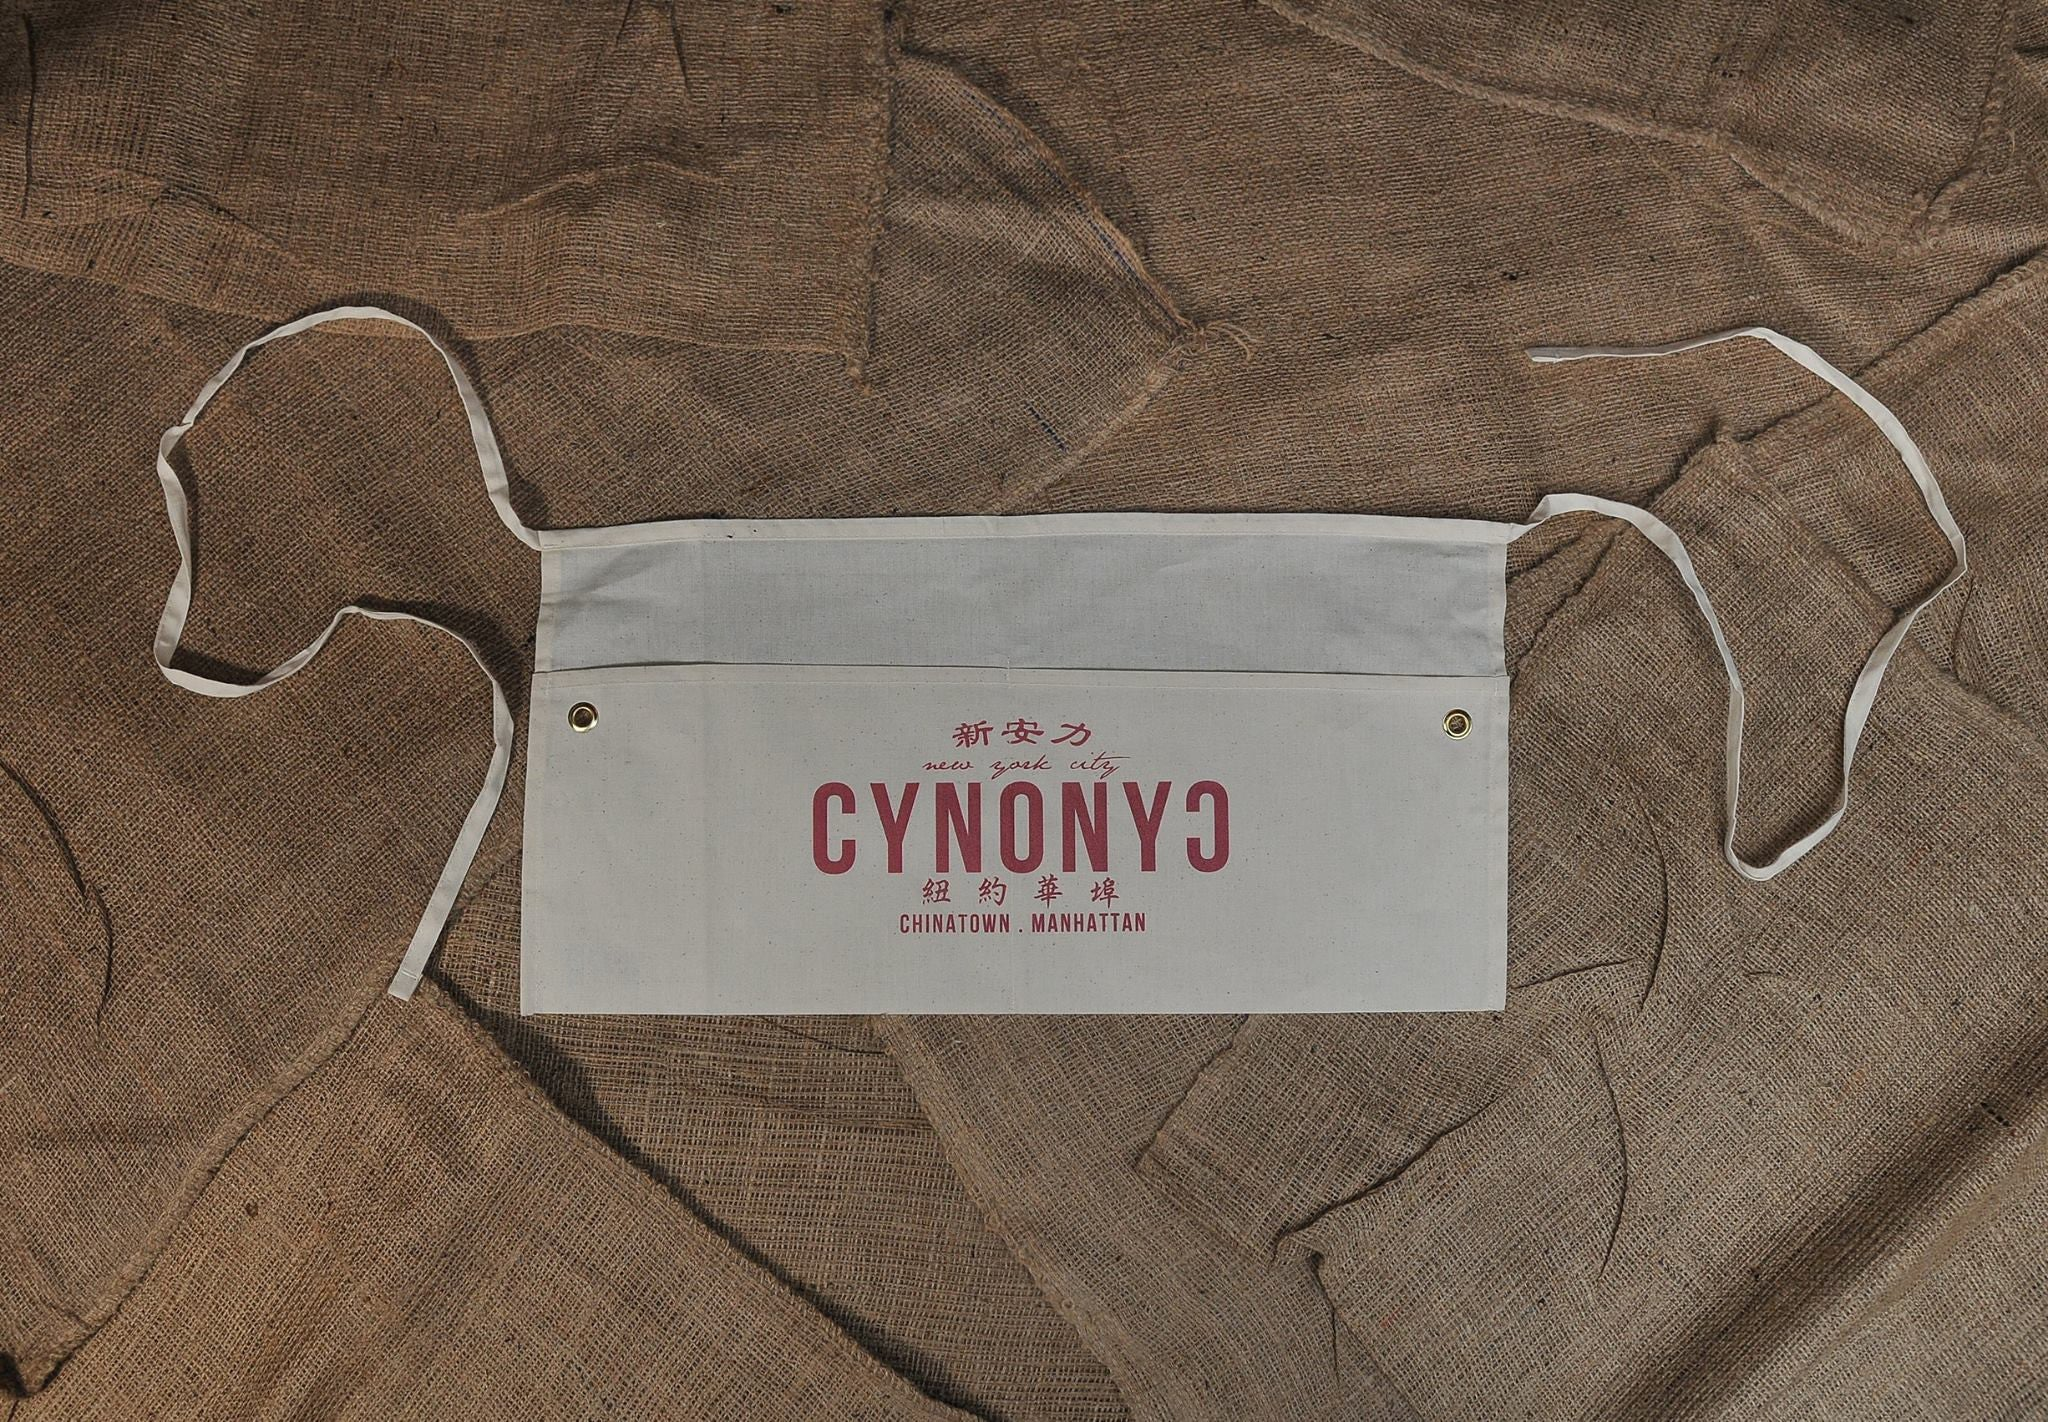 CANVAS WAIST APRON - CYNONYC Chinatown Clothing Company